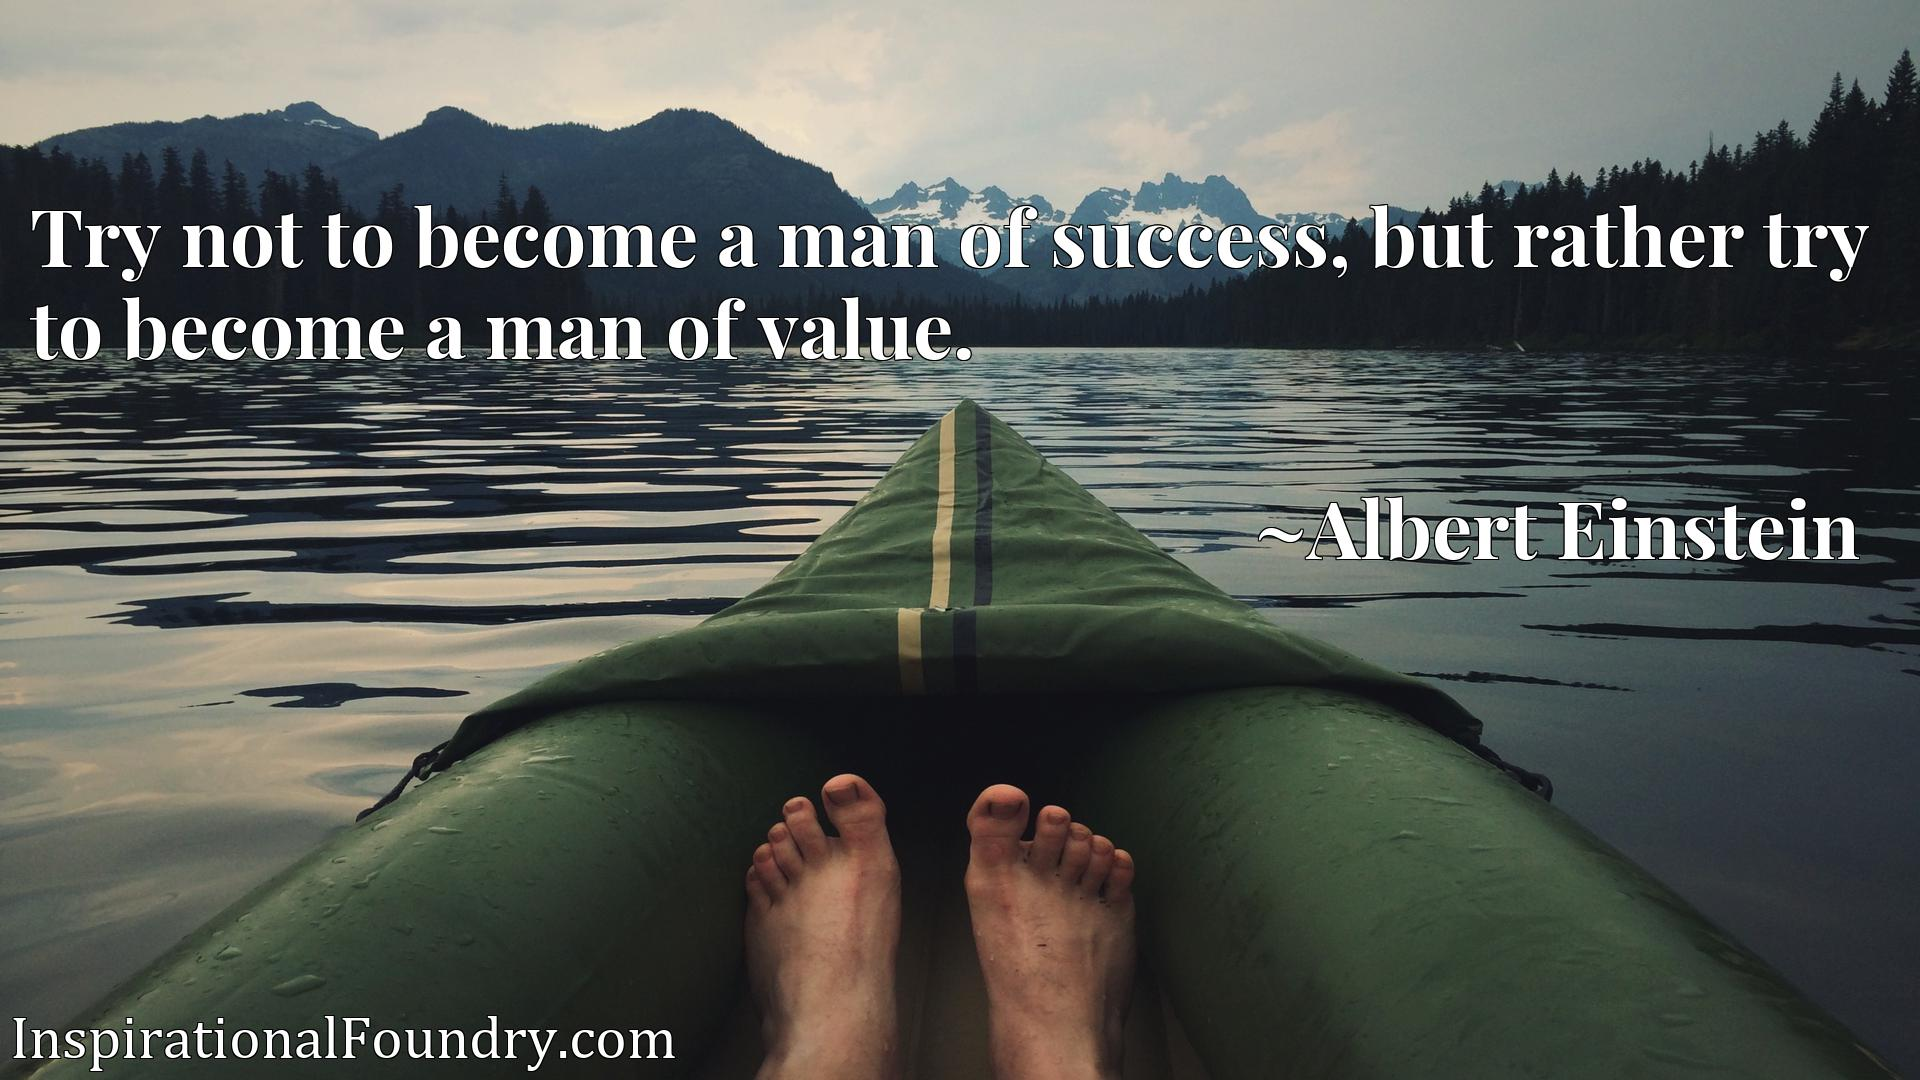 Try not to become a man of success, but rather try to become a man of value.